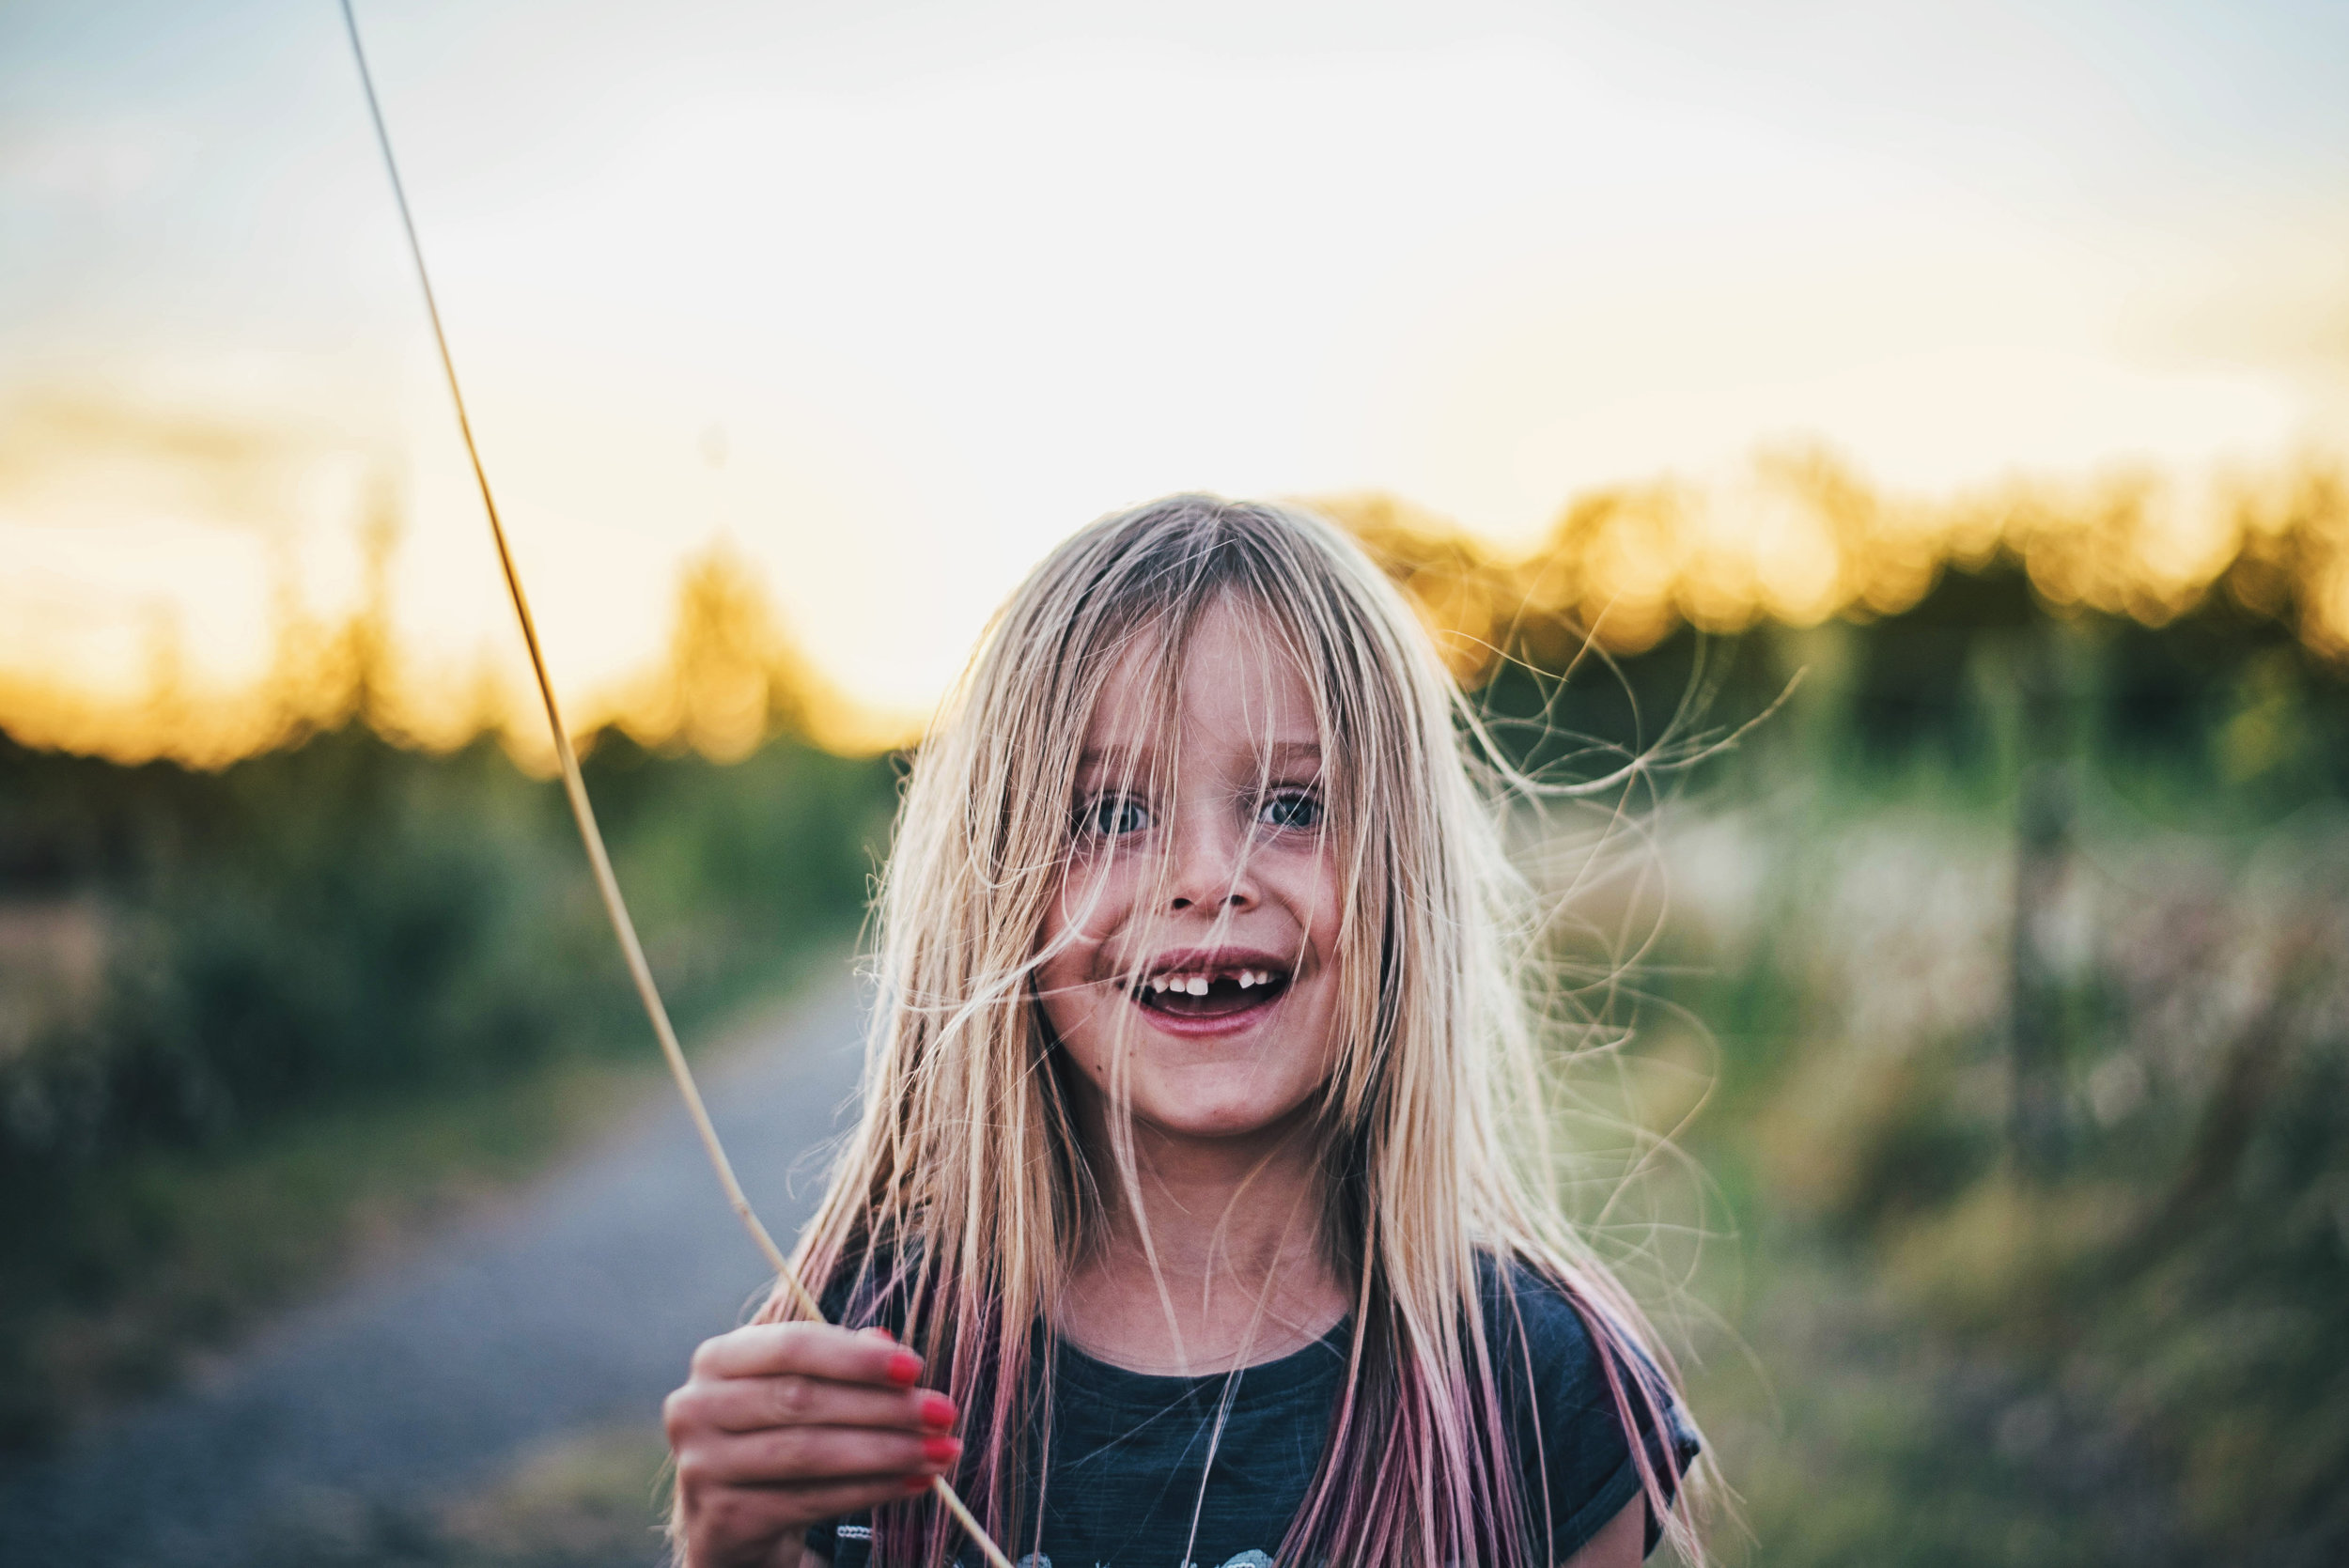 Young girl holds up blade of grass Essex uK Documentary Portrait Photographer